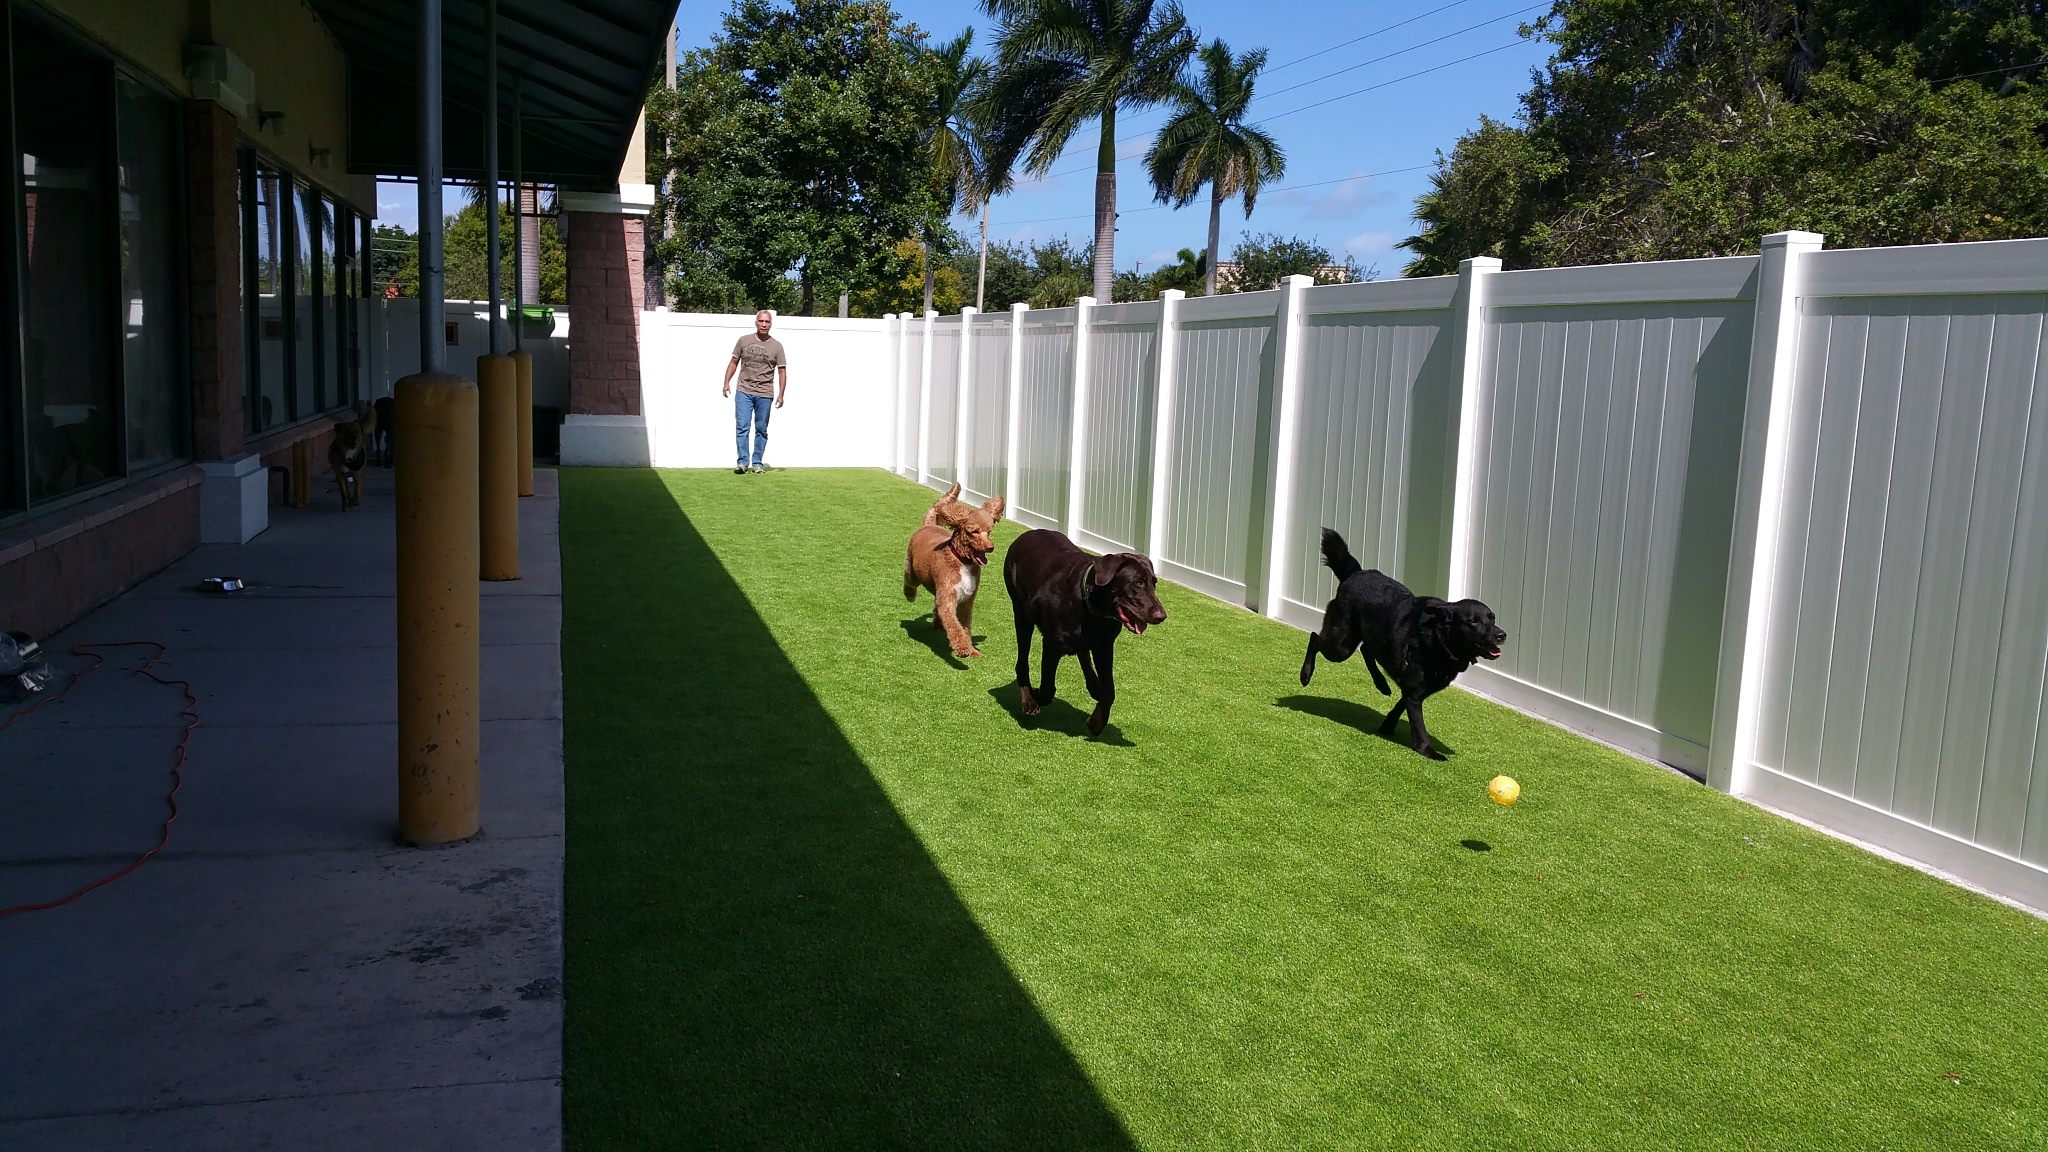 Dog Day Care In Boynton Beach Fl